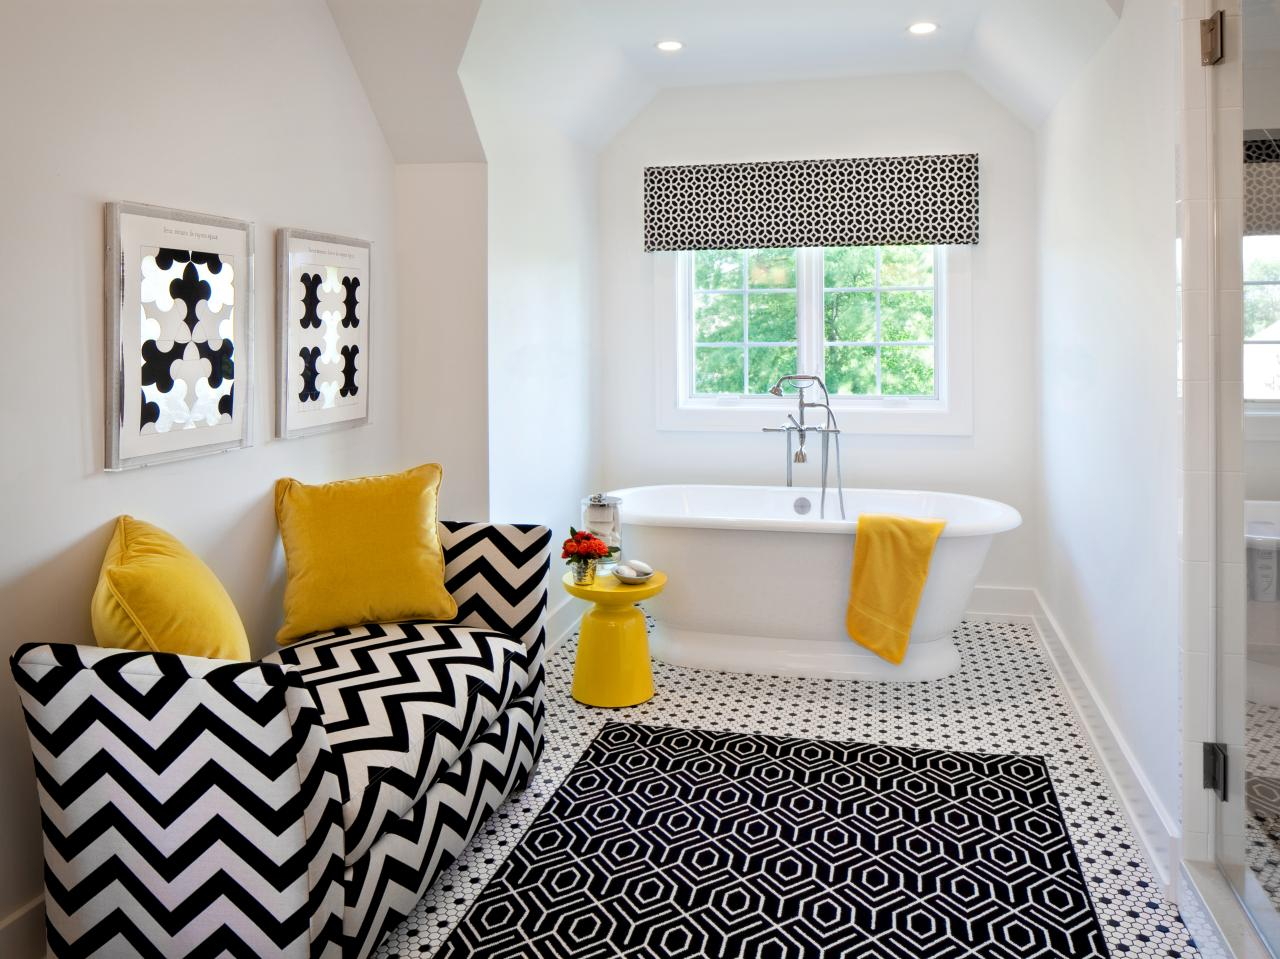 black and white bathroom decor ideas hgtv pictures hgtv black and white bathroom decor ideas